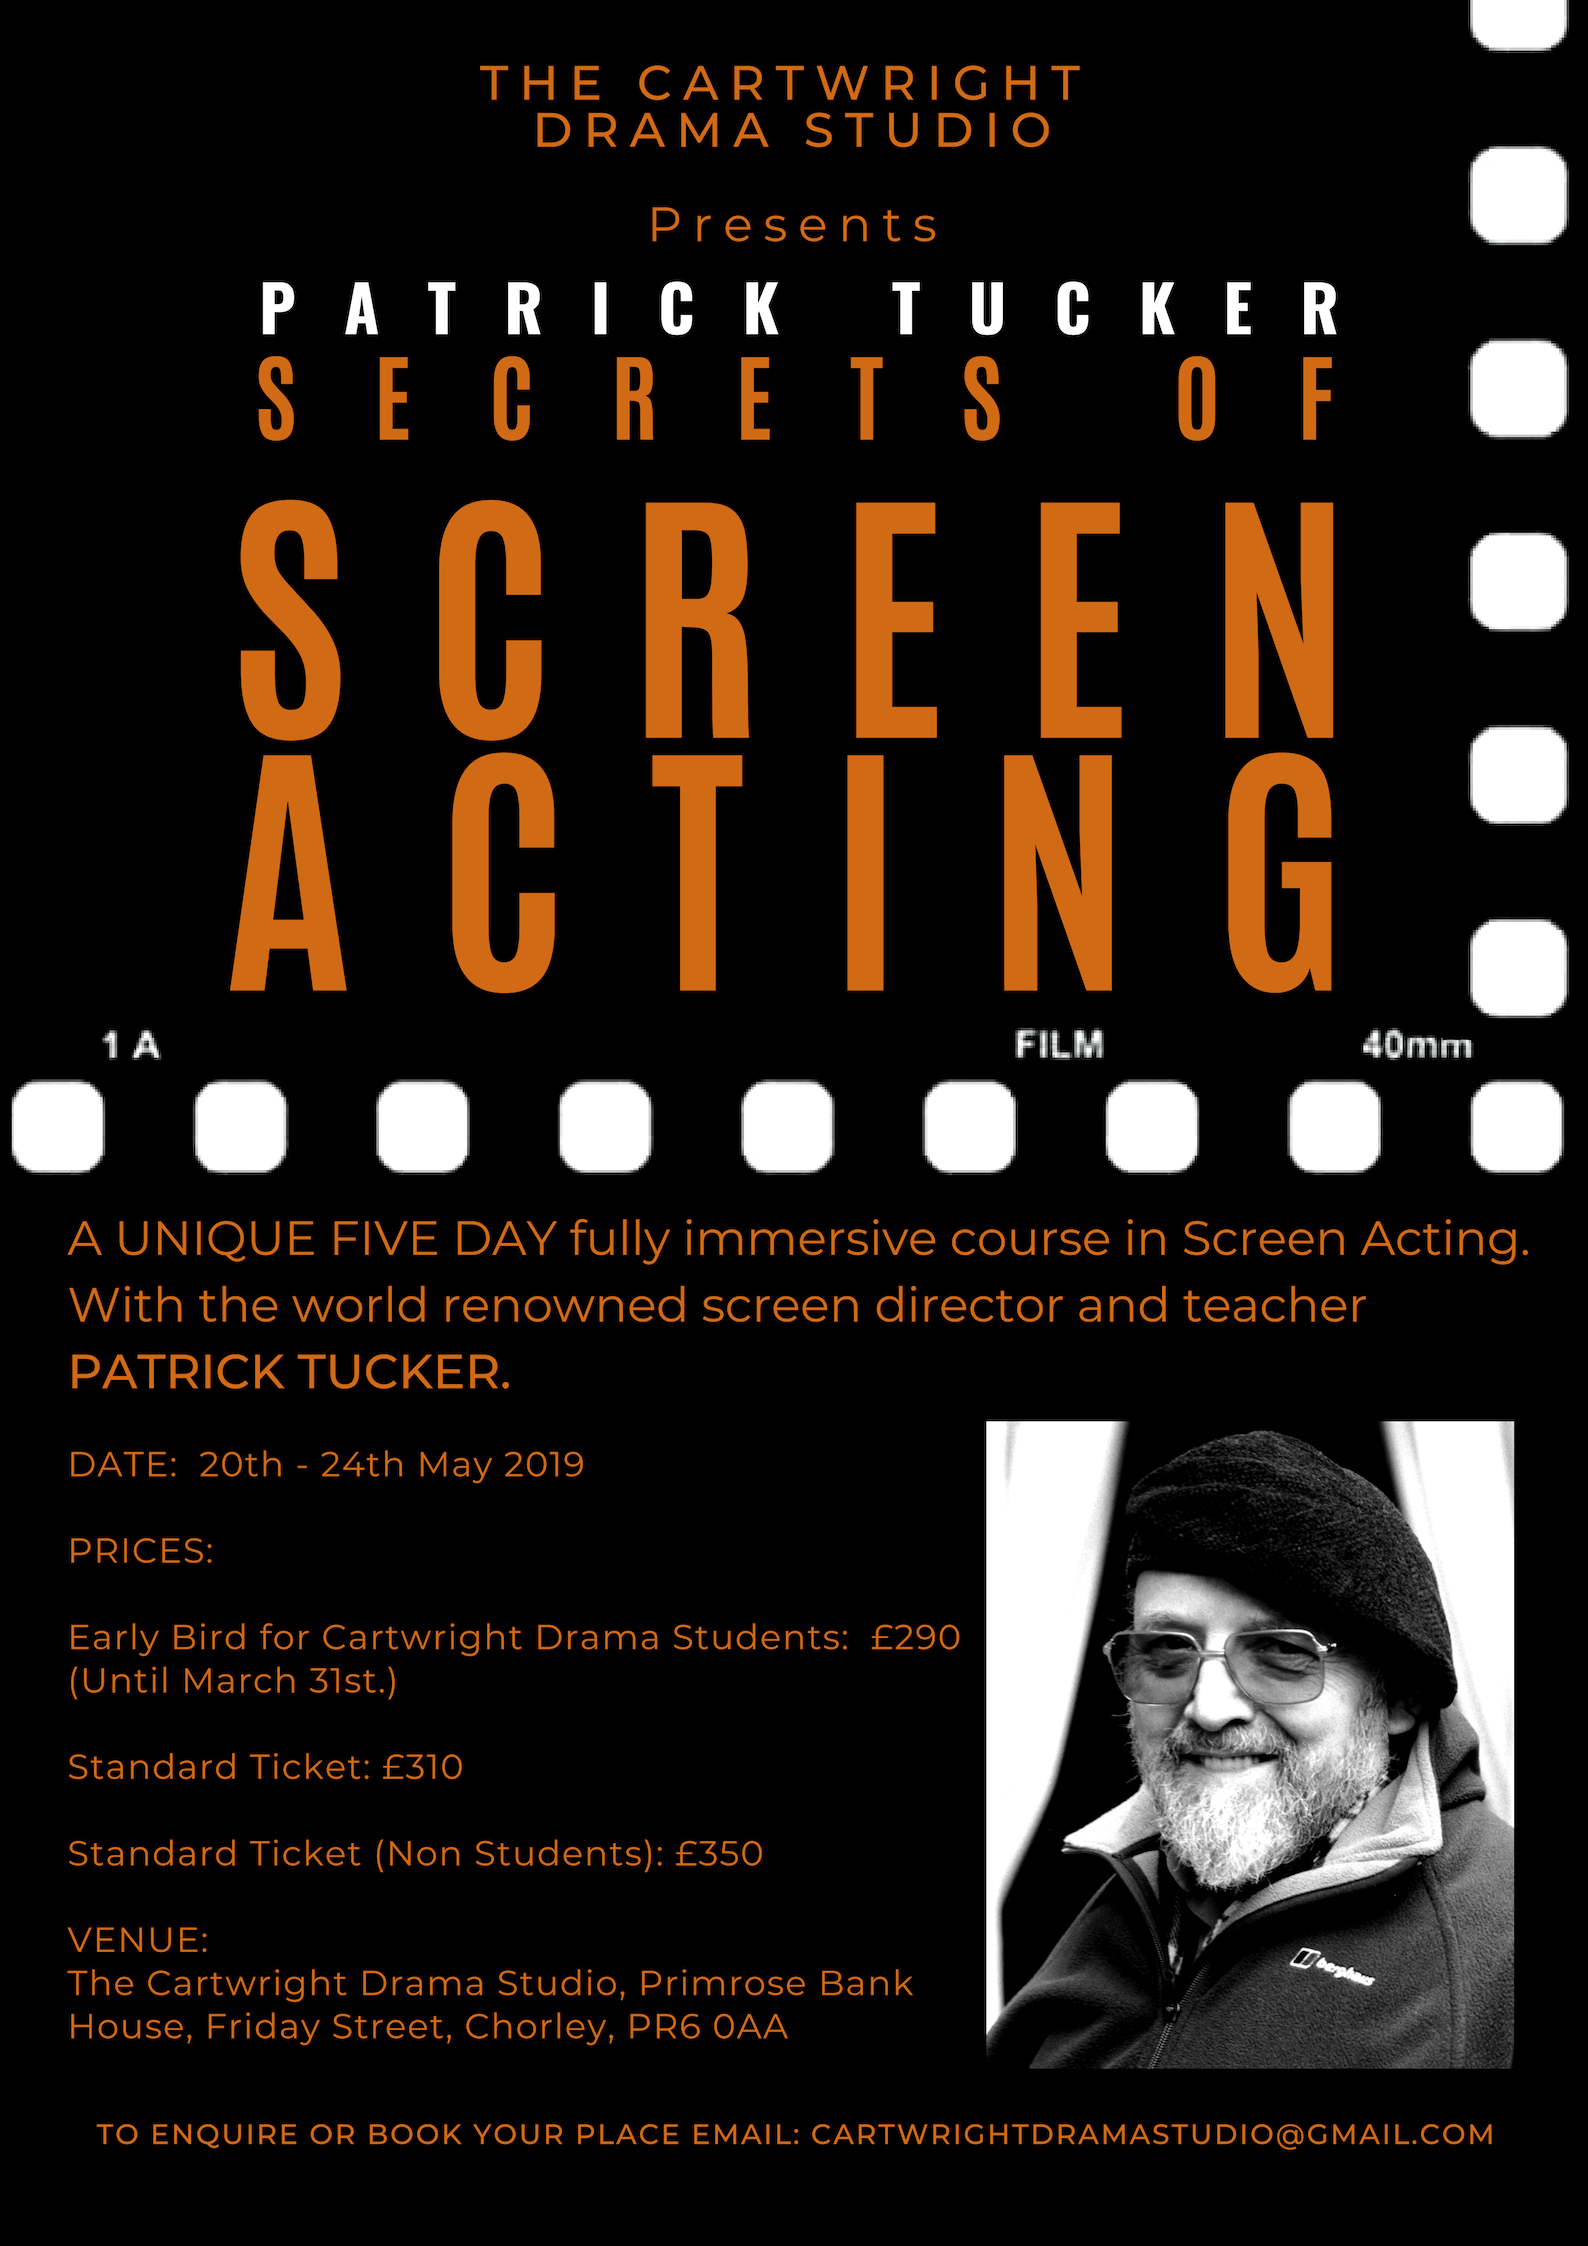 Cartwright Drama Studio Presents Secrets of Screen Acting Image 3